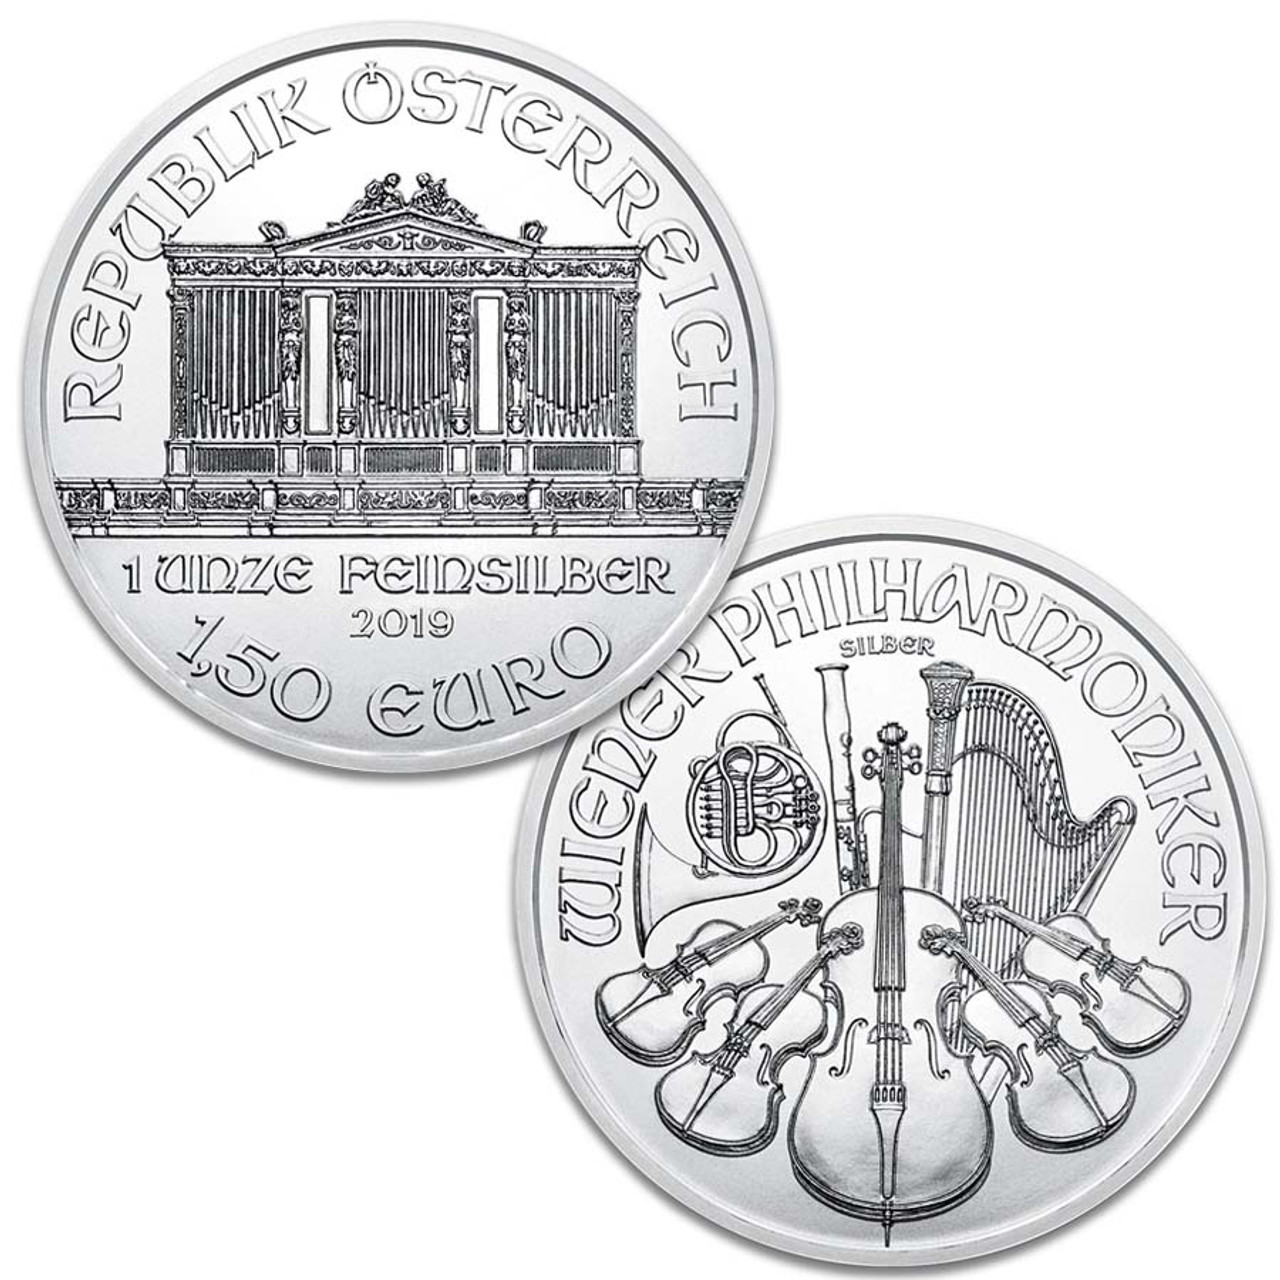 Austria 2019 1 Oz. Silver Philharmonic 1.5 Euro, Brilliant Uncirculated